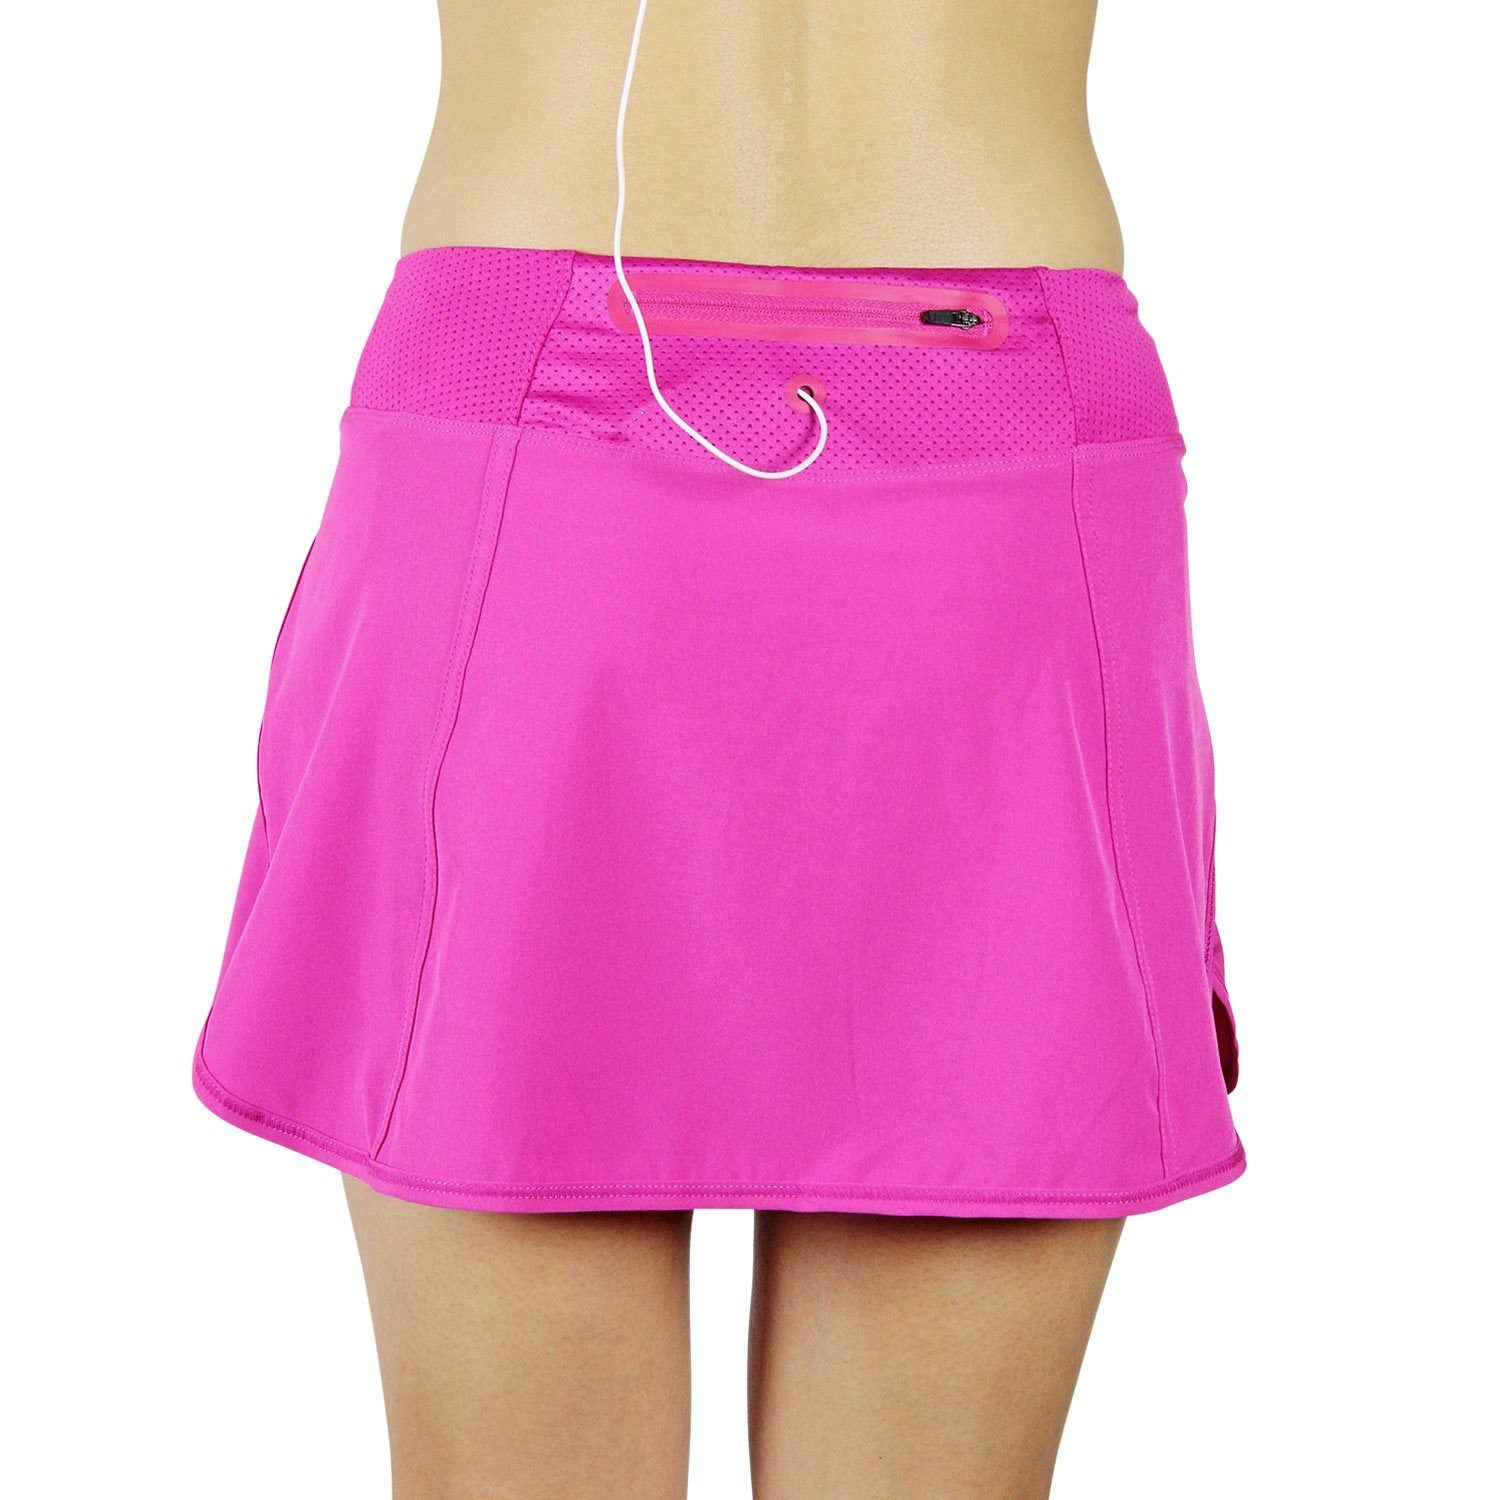 Welcome to RunningSkirts® High Performance Fitness Fashion & athletic apparel! The original RunningSkirts® brand athletic apparel featuring high quality fitness fashion for every day life and all .